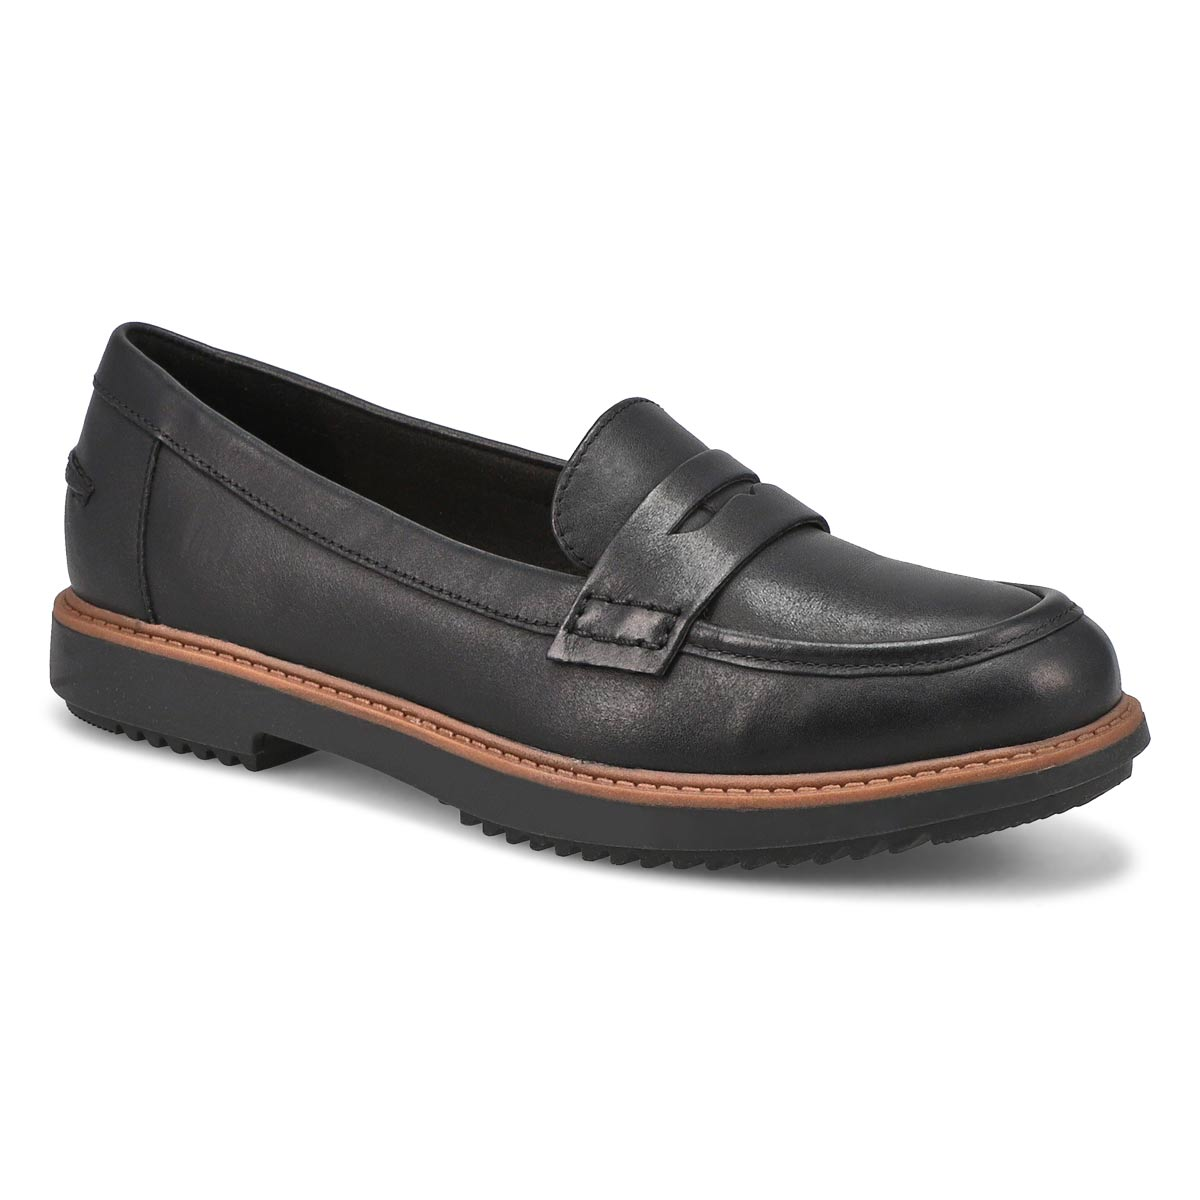 Lds Raisie Eletta blk lthr casual loafer